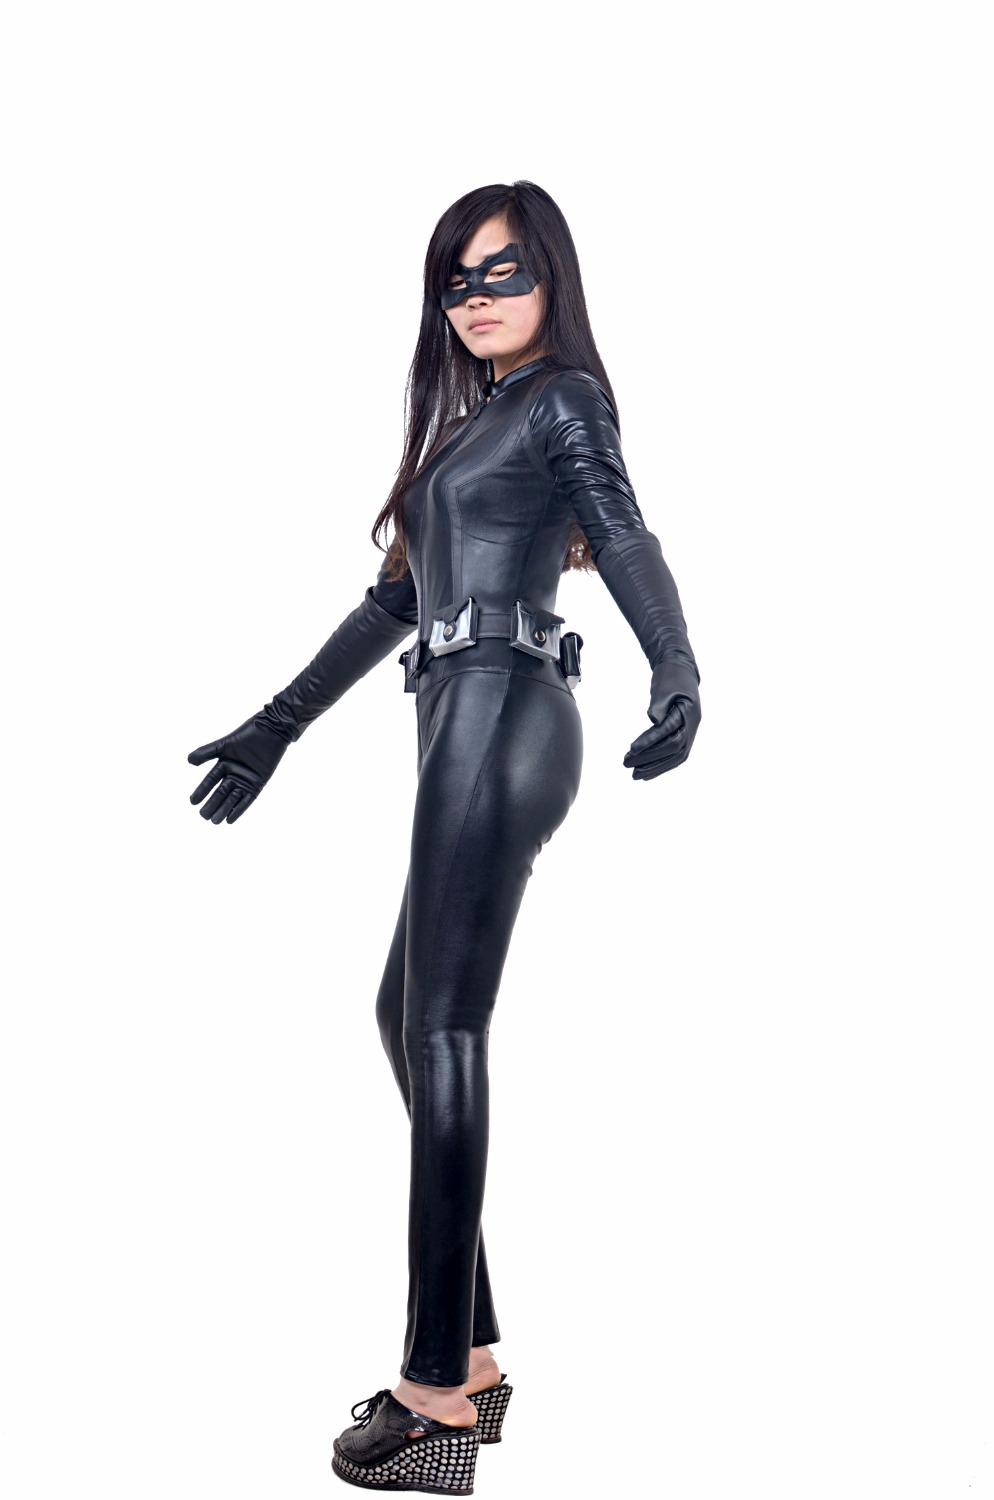 Batman the dark knight rises Catwoman cosplay halloween costumes-in Movie u0026 TV costumes from Novelty u0026 Special Use on Aliexpress.com | Alibaba Group  sc 1 st  AliExpress.com & Batman the dark knight rises Catwoman cosplay halloween costumes-in ...